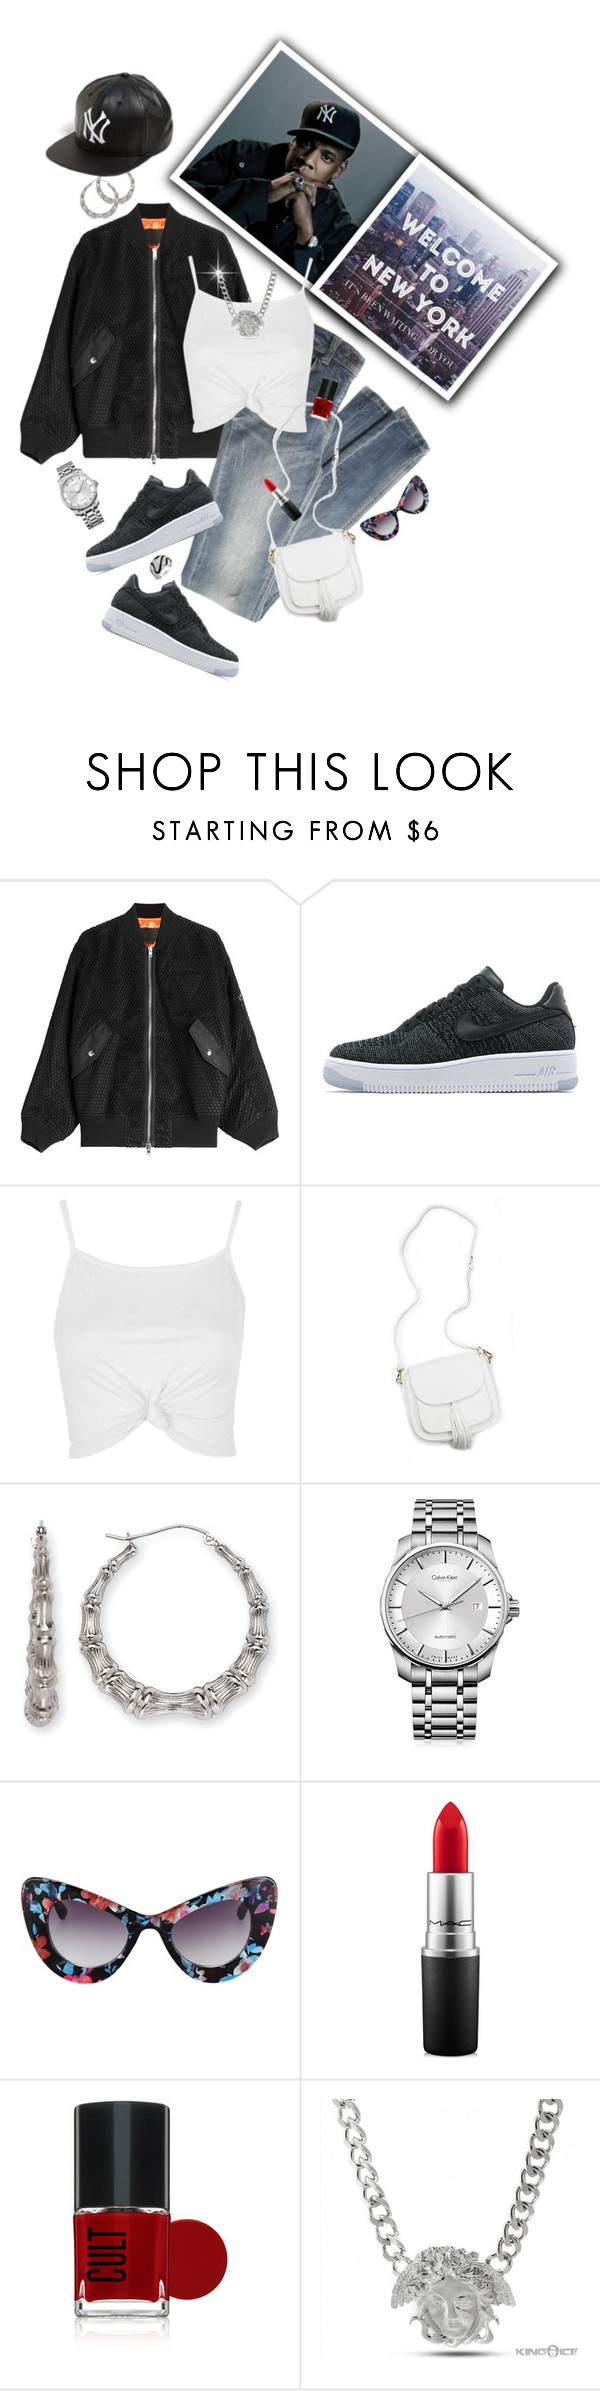 """""I put on for my city so when I'm dead and gone I got one last wish: put my Yankee cap on"" -- Jay Z"" by shortyluv718 ❤ liked on Polyvore featuring Alexander Wang, NIKE, Topshop, Bamboo, Calvin Klein, MAC Cosmetics, Bling Jewelry, jayz, baseballcap and baseballhats"